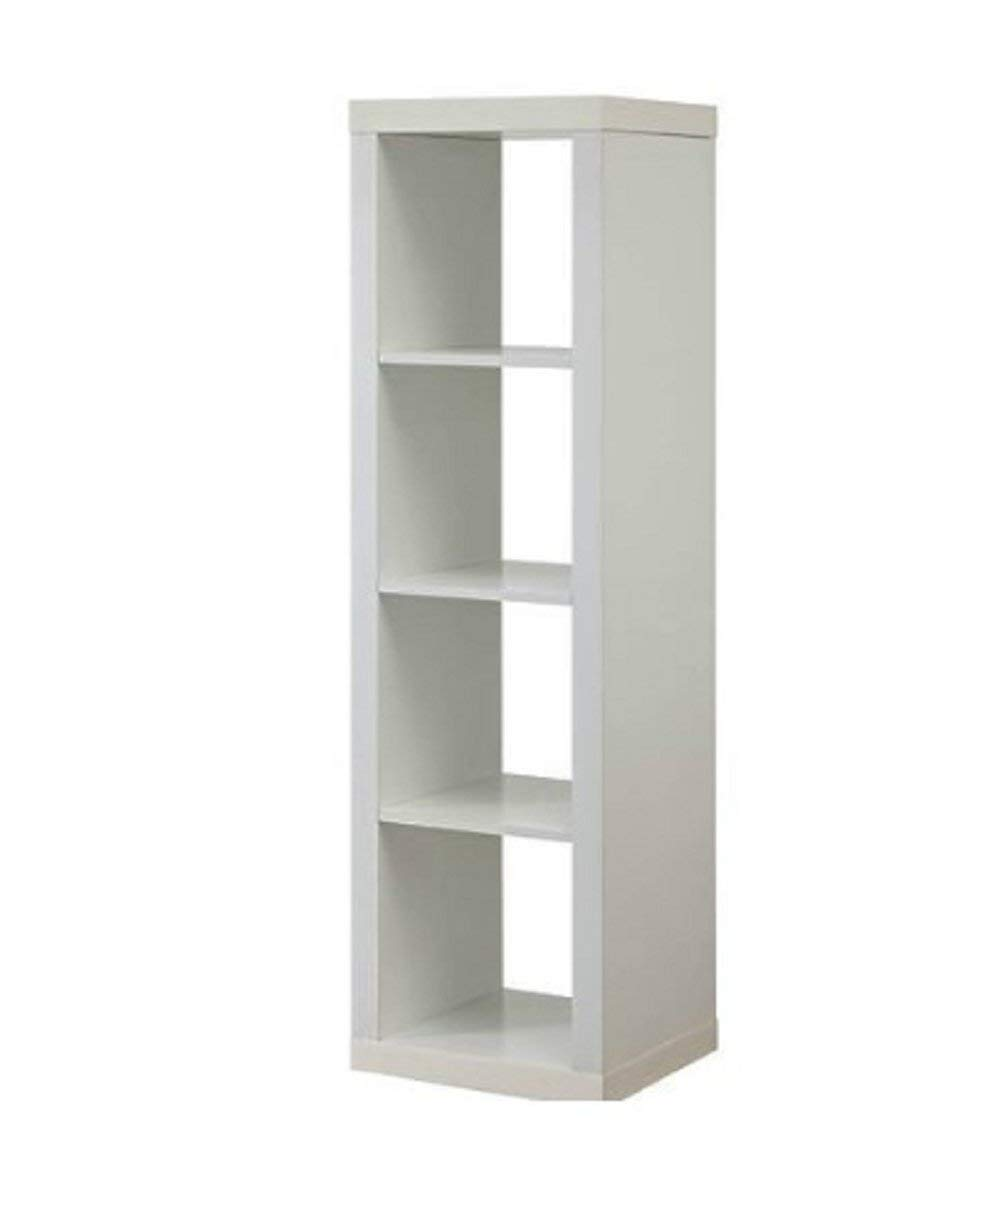 Awesome Cheap Storage Cube White Find Storage Cube White Deals On Pabps2019 Chair Design Images Pabps2019Com